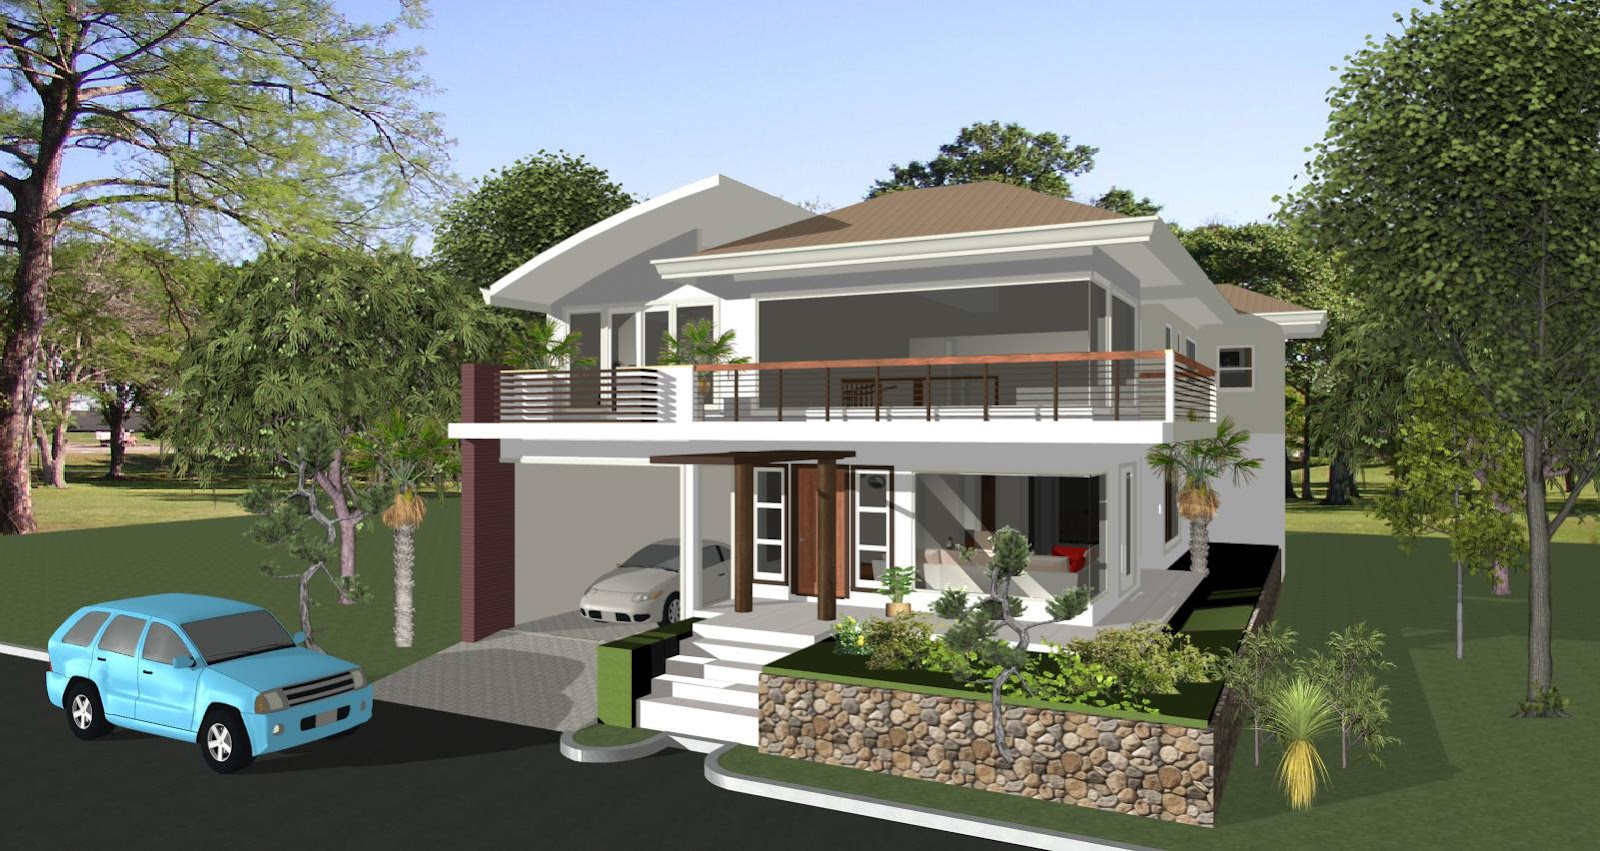 House designs philippines architect the interior for Home construction design